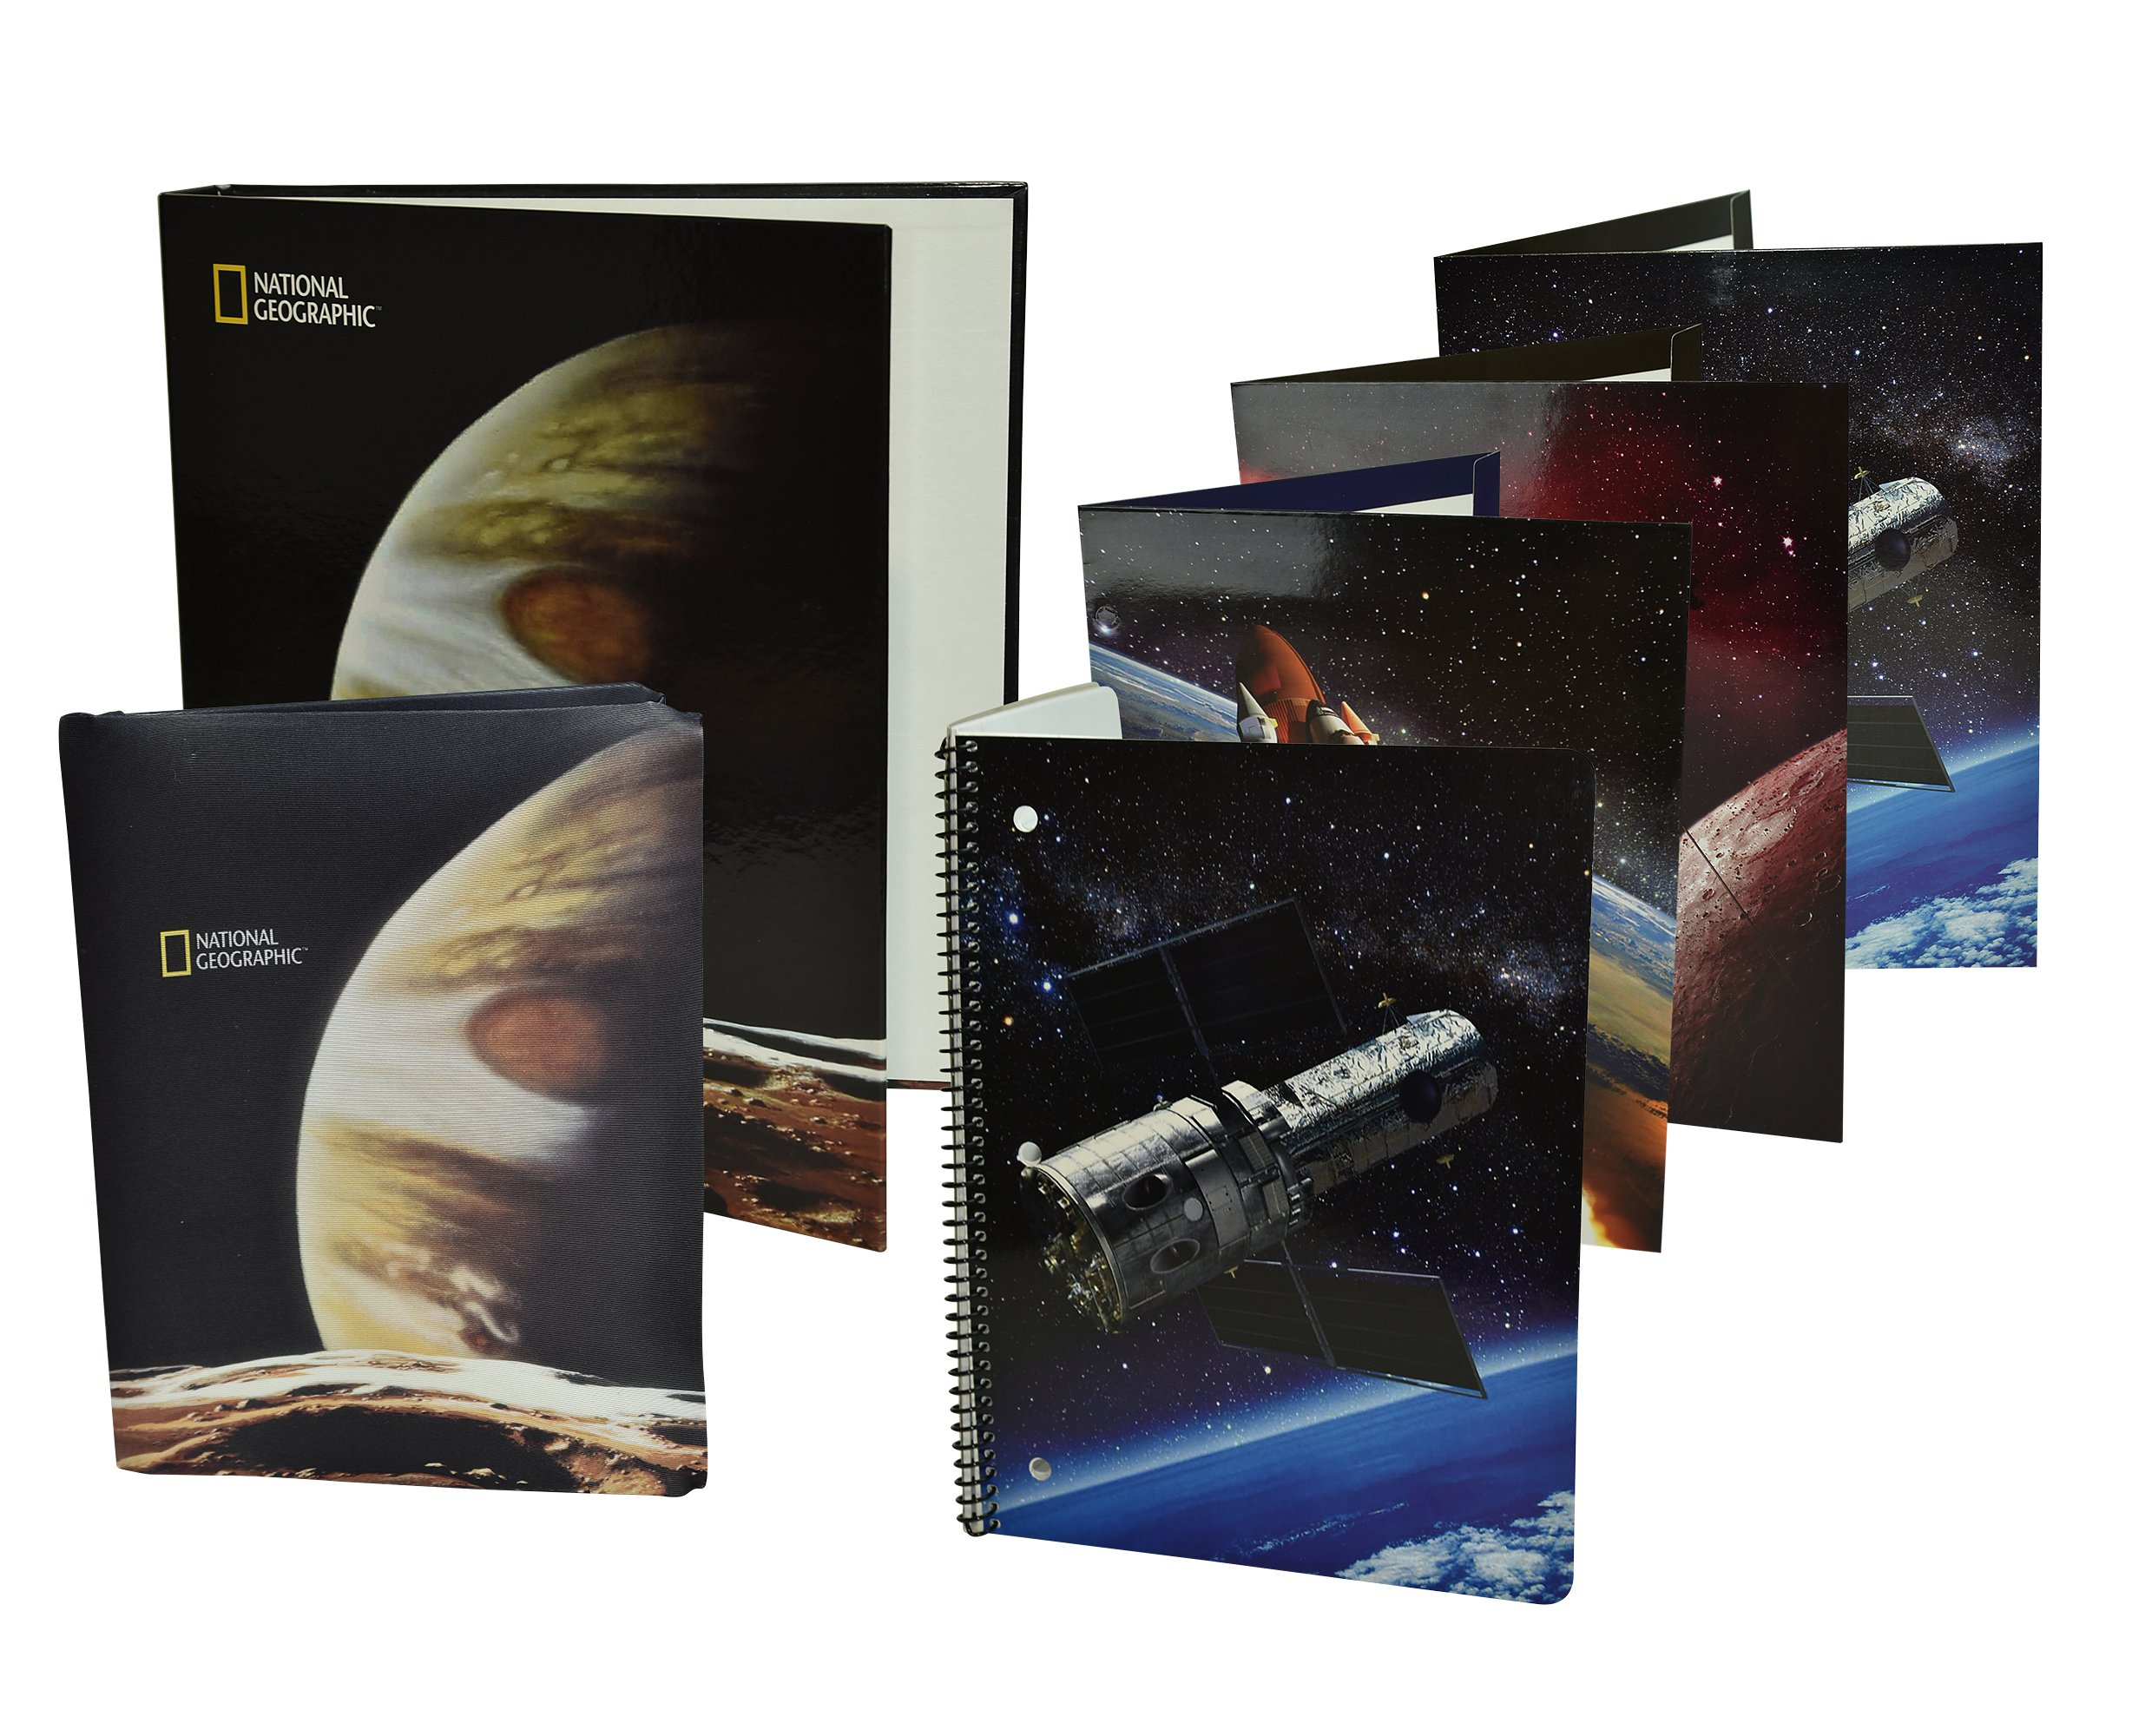 National Geographic Outer Space Back to School Supplies for Kids Binder Wide Ruled Notebook Folders Stretchy Book Cover